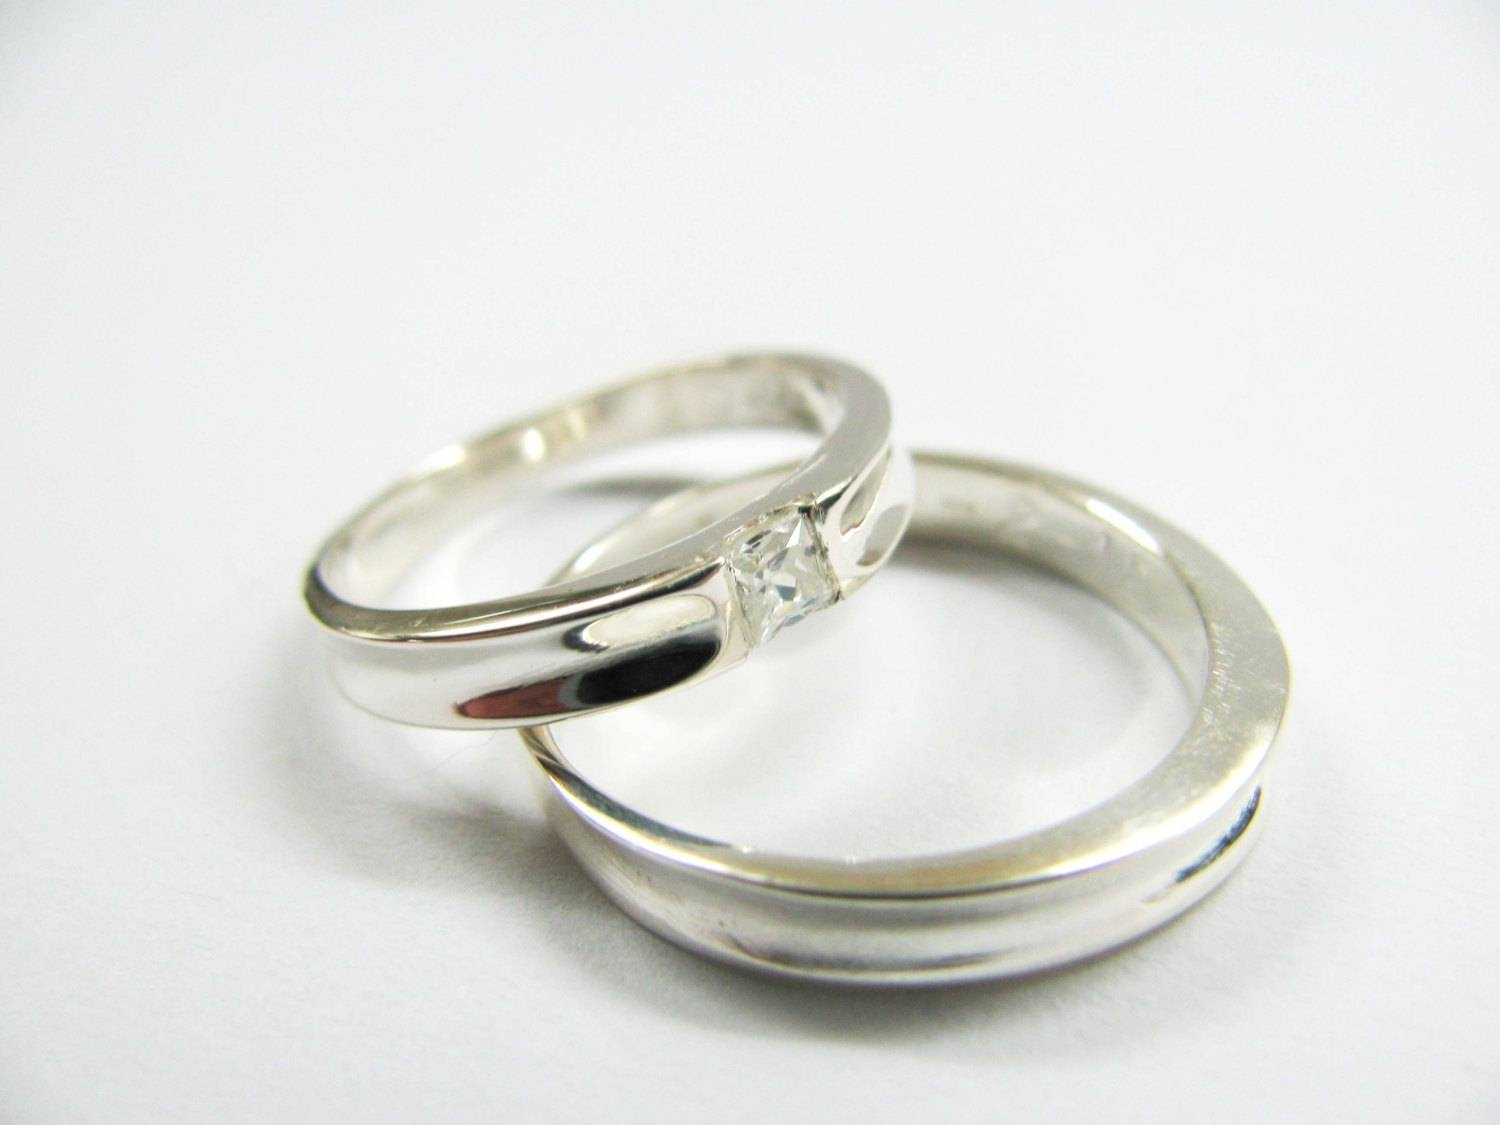 Handmade Wedding Bands White Swarovski Square Stone Within Swarovski Wedding Bands (View 4 of 15)